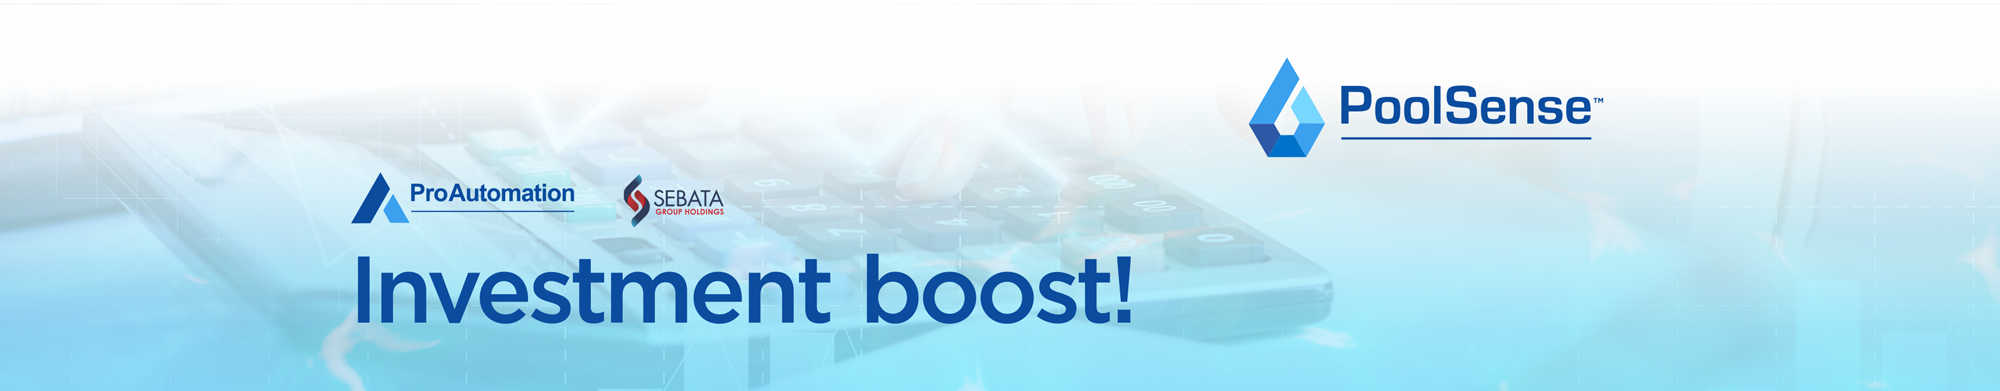 banner_poolsense_investment_boost